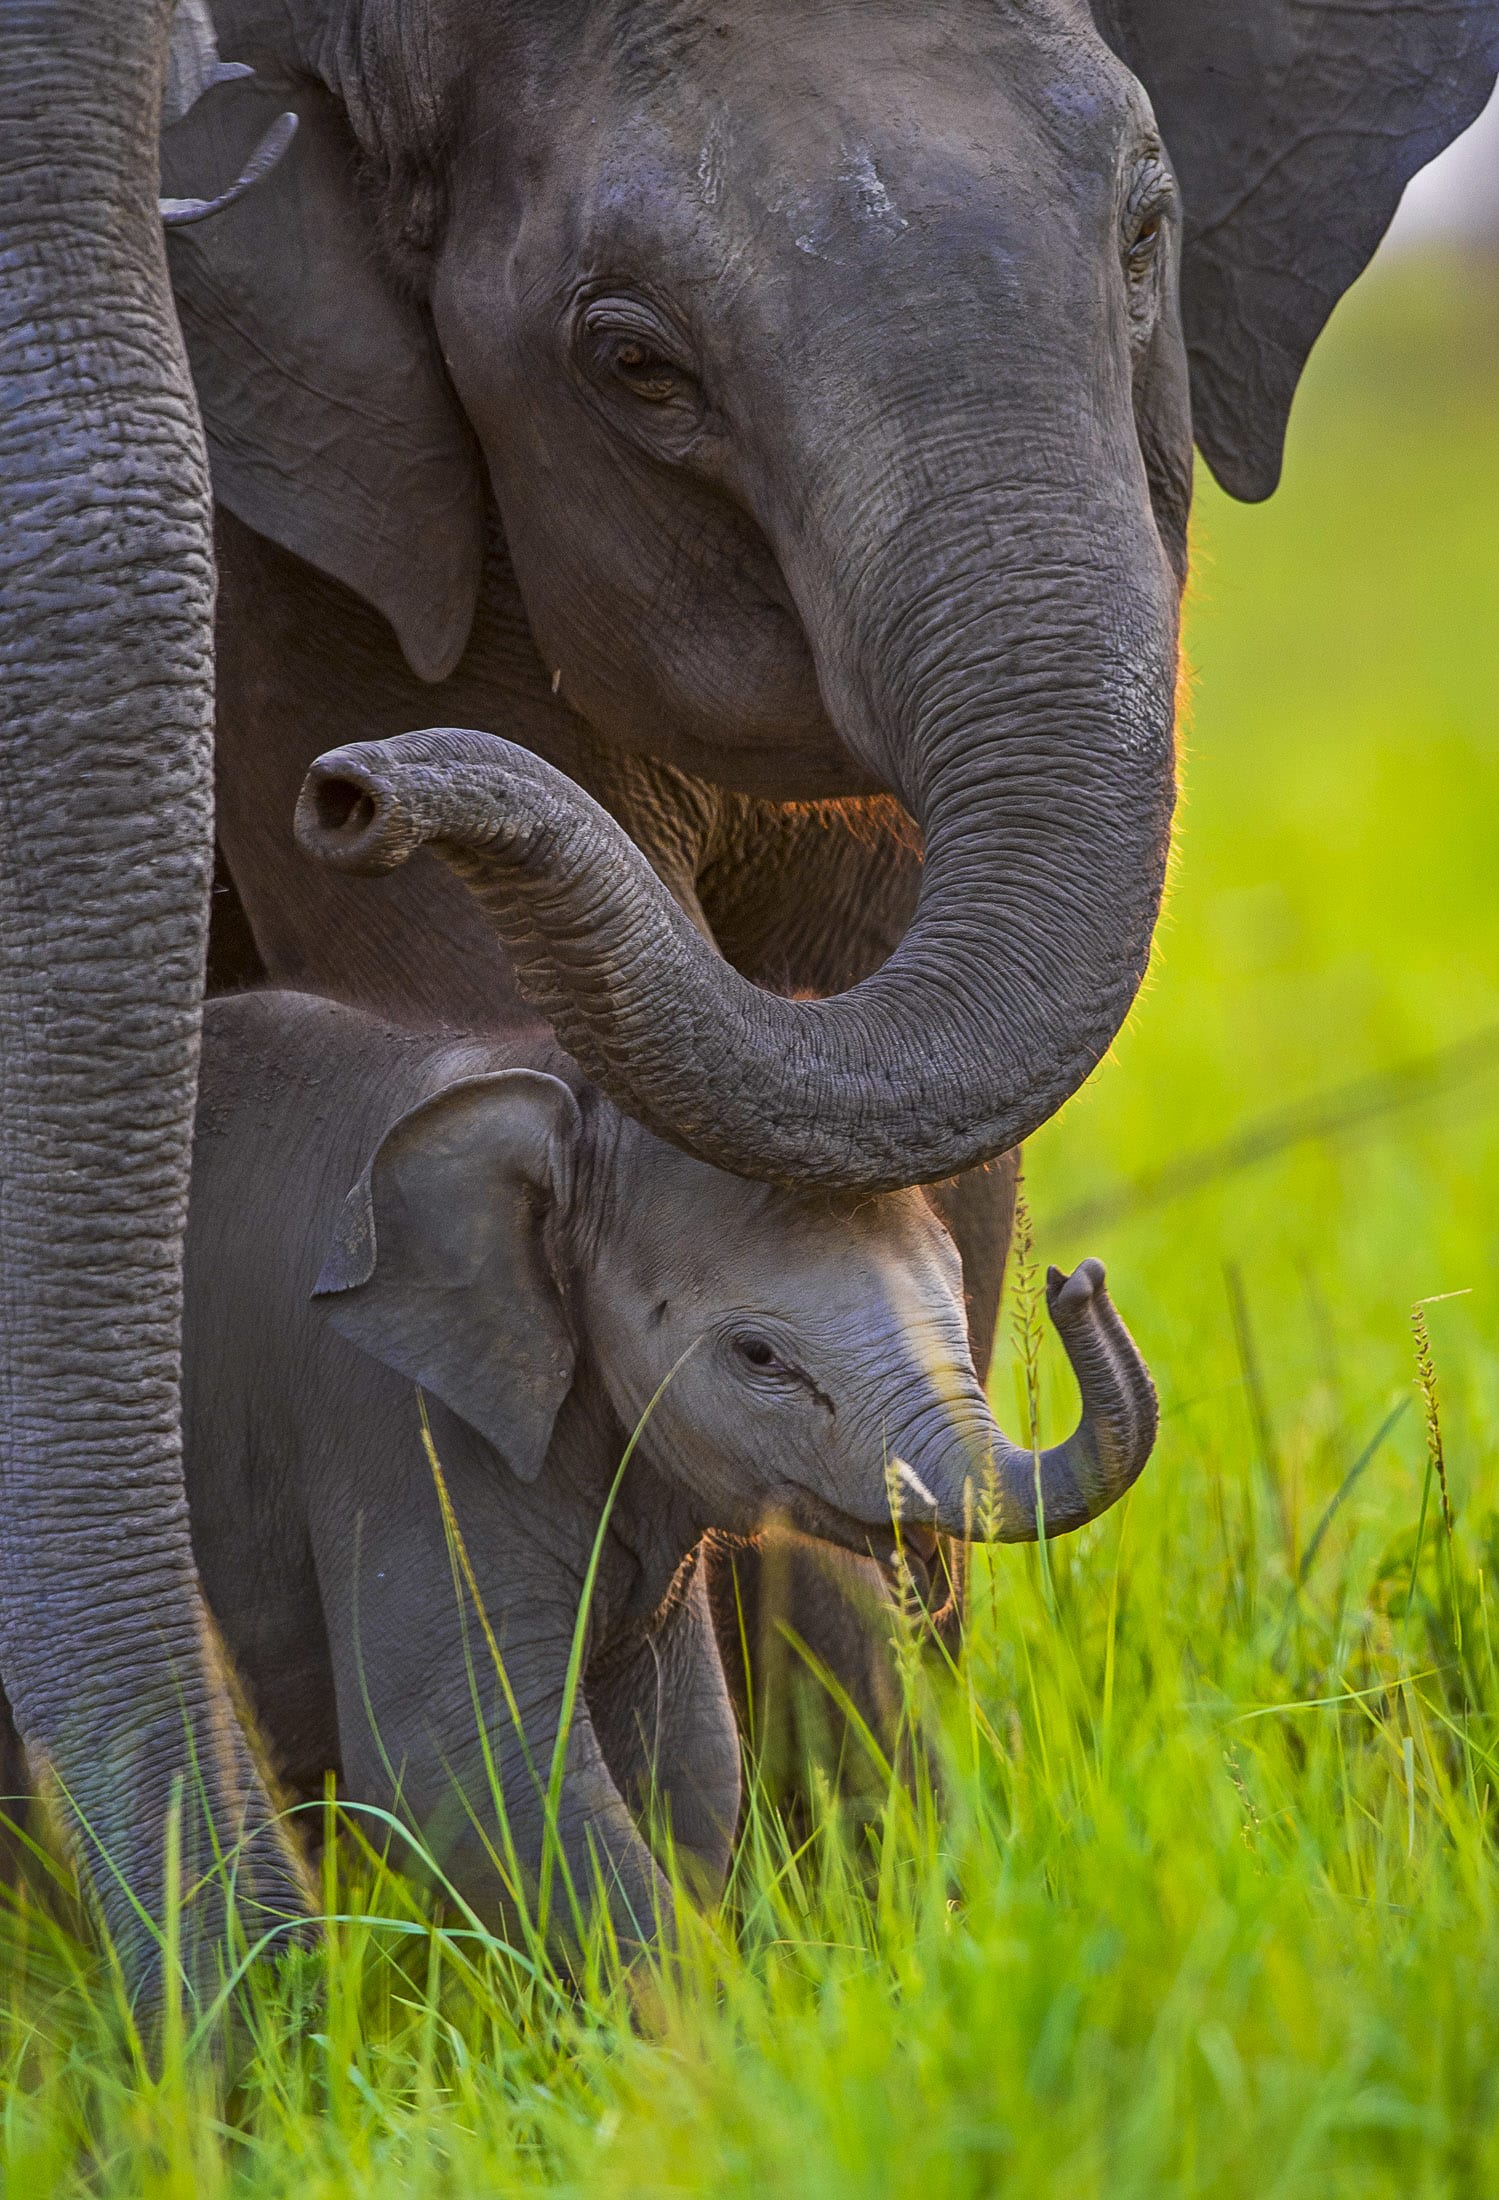 """Like many other animals, elephants engage in """"love play"""", says Joshi, which includes mixing of bull elephants in the group, selecting a prospective partner to mate with, the smelling of genitals, sniffing urine and dung, touching the trunk especially the temporal gland, and discharge of urine. """"Long duration of love play and secretion of urine are important factors"""" promoting successful mating behaviour, he states."""